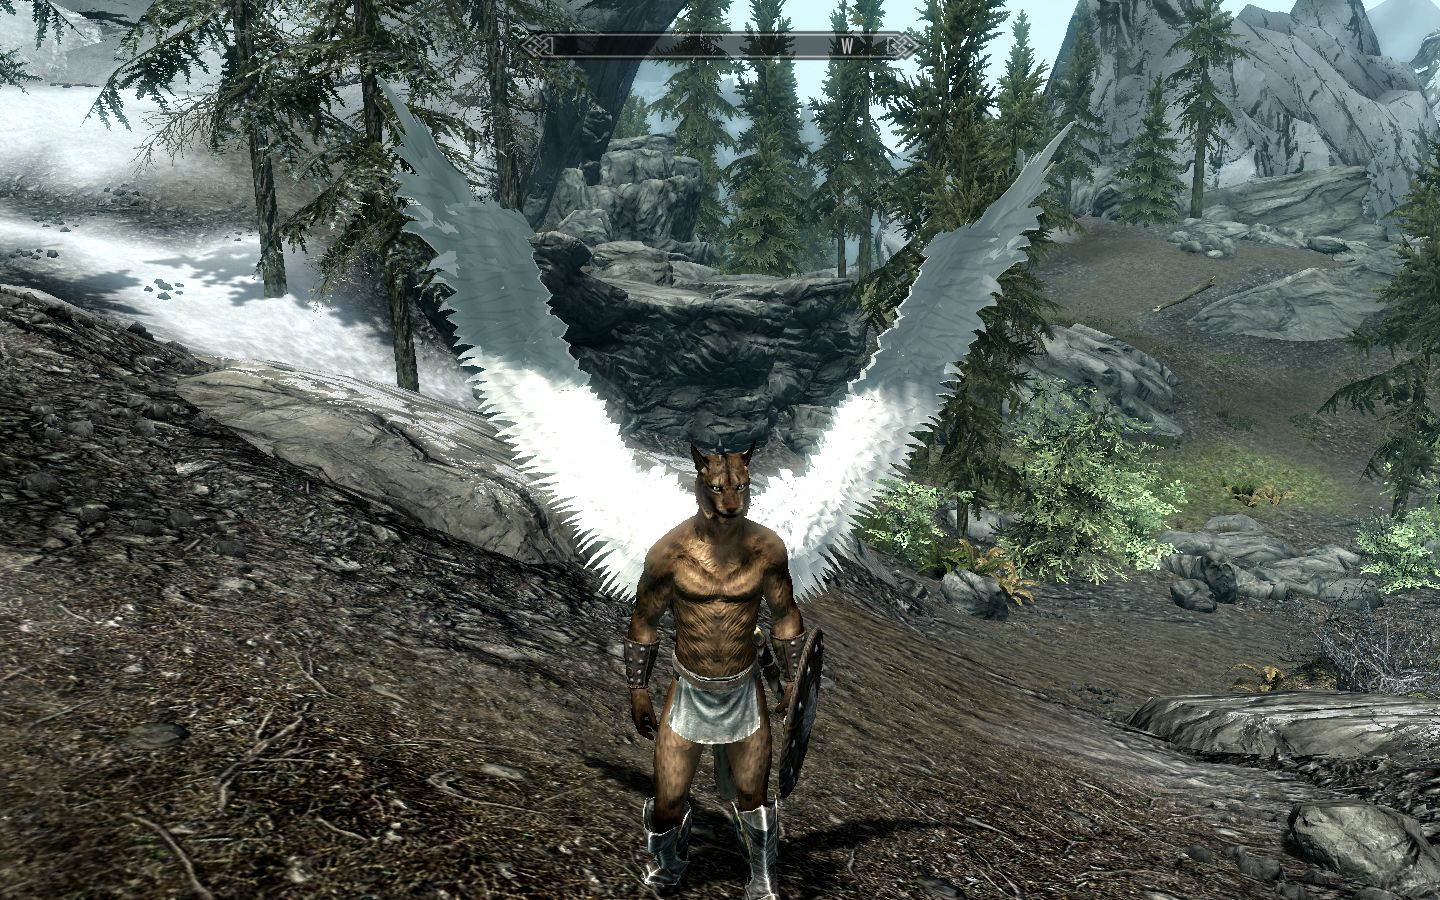 What skyrim race are you